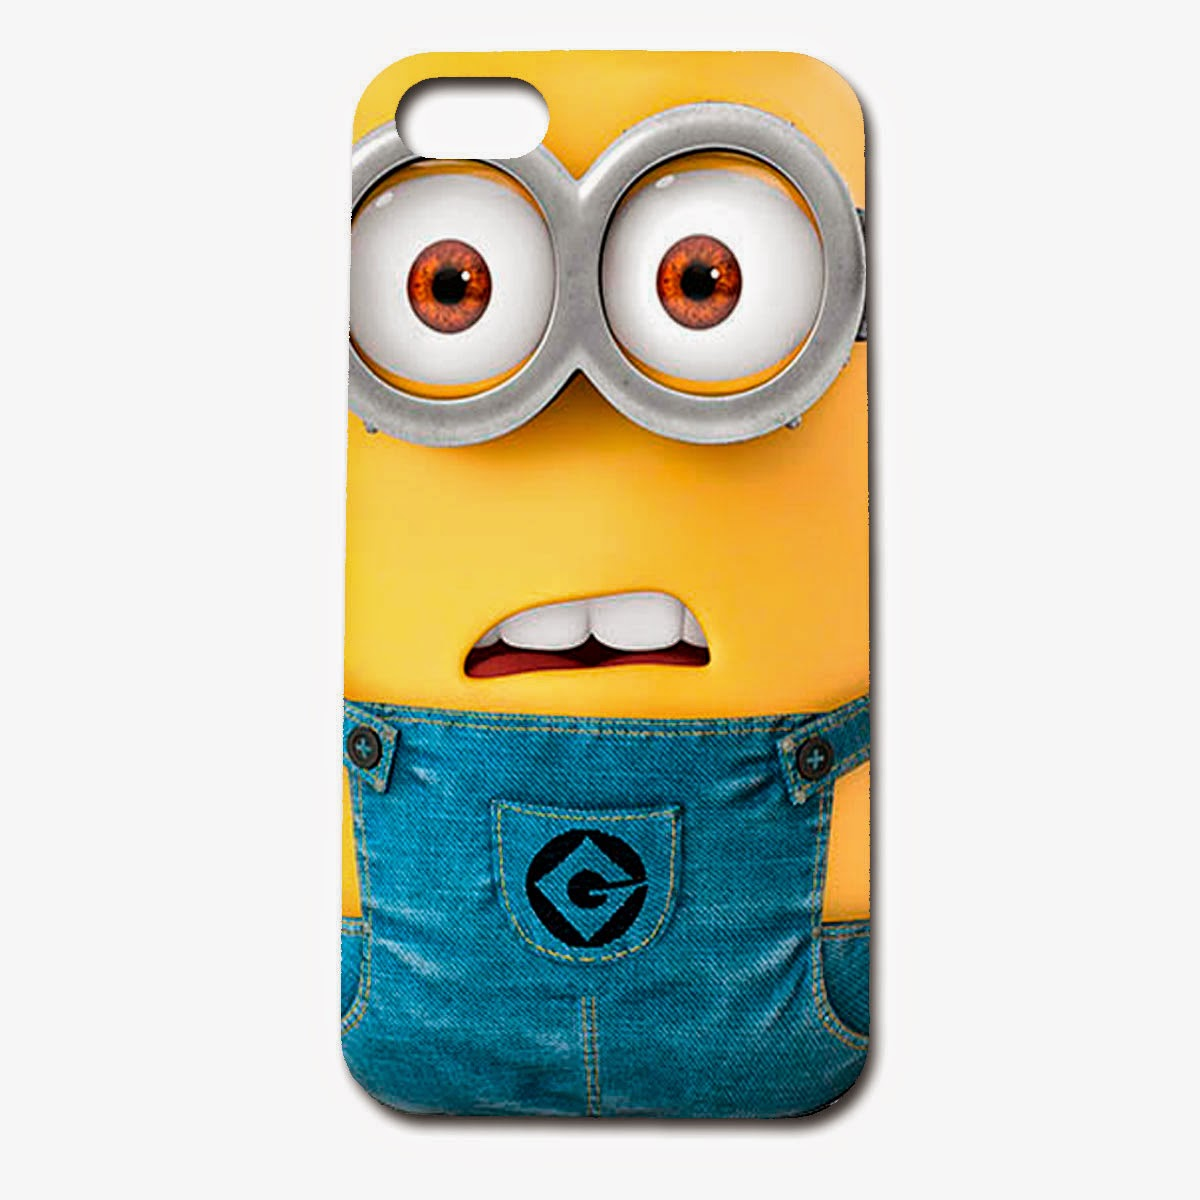 Funda Minion iPhone 4 y 5